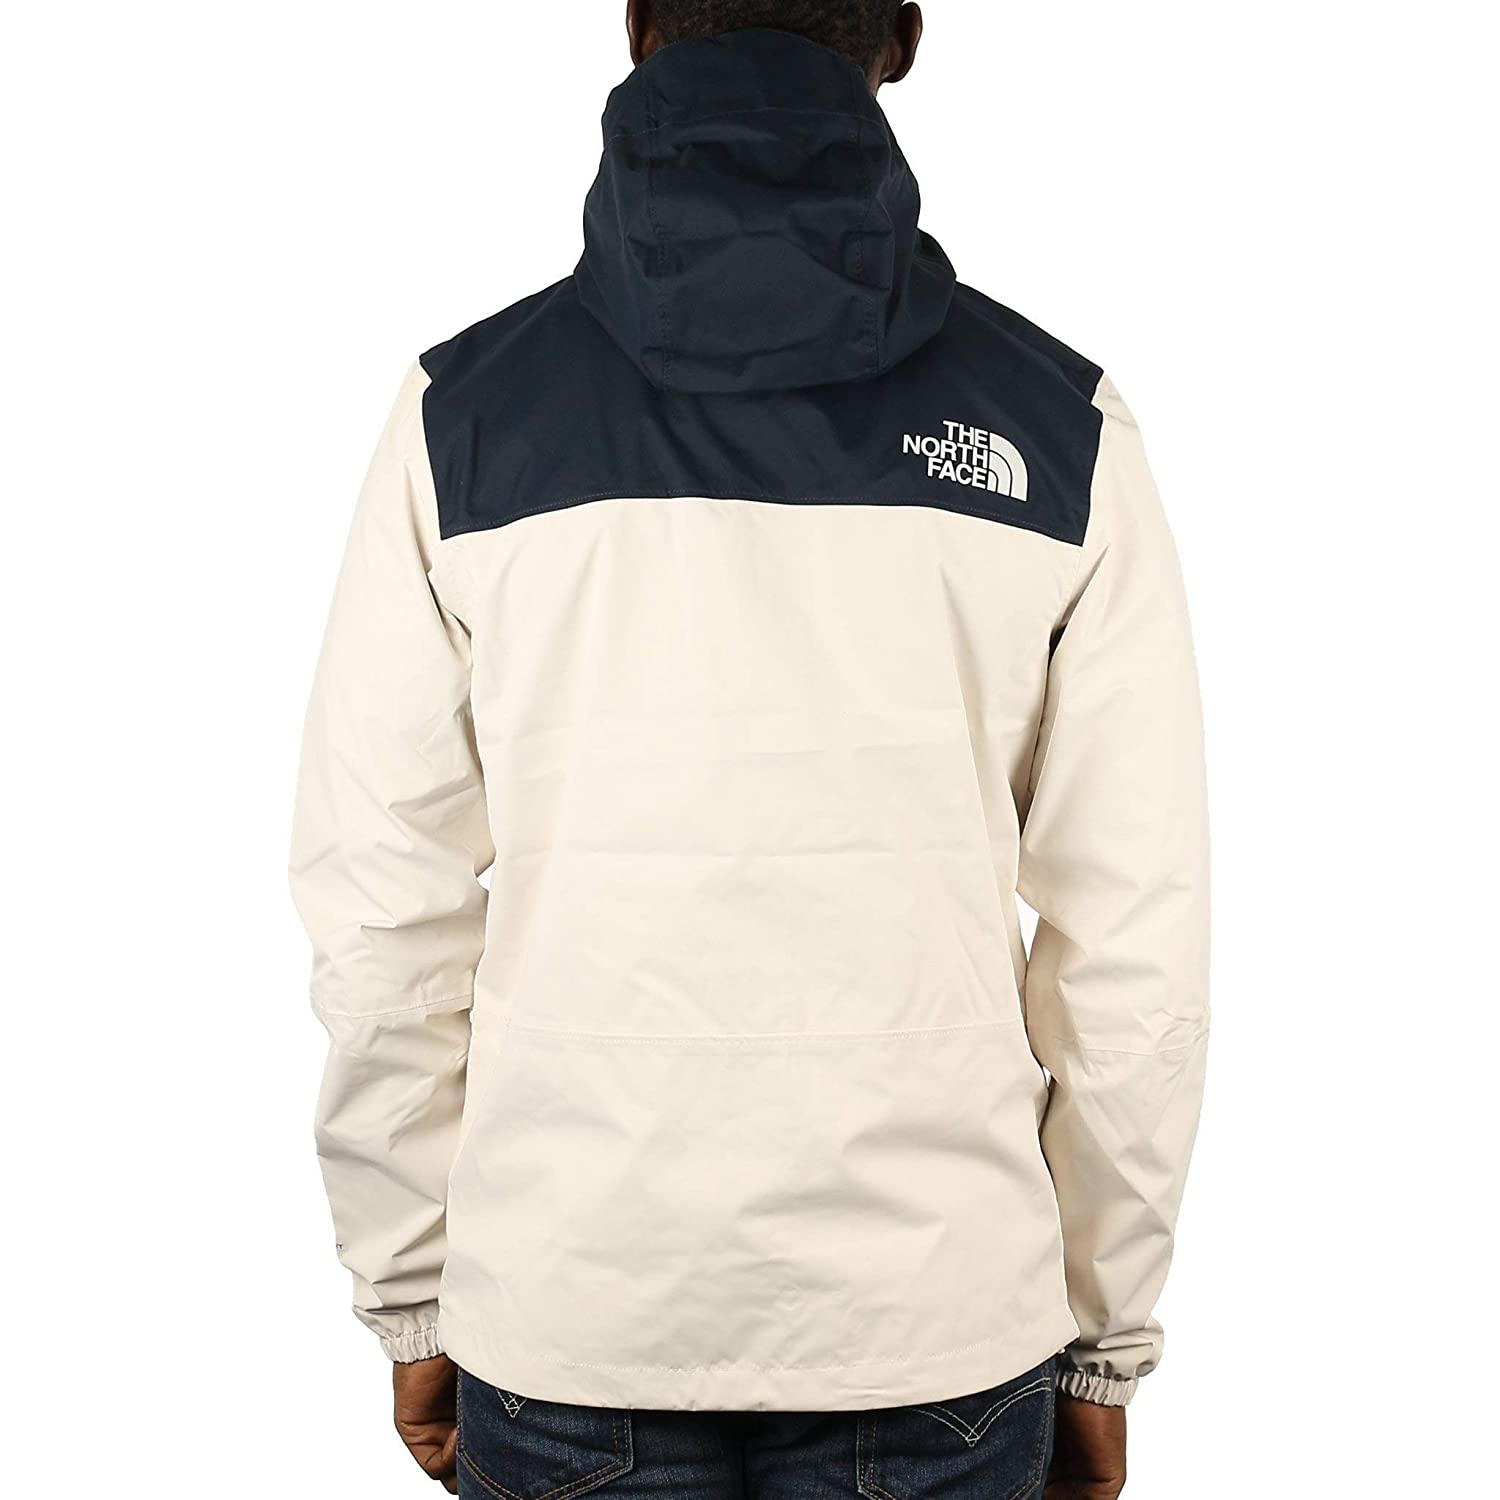 95a117383 THE NORTH FACE Jacket